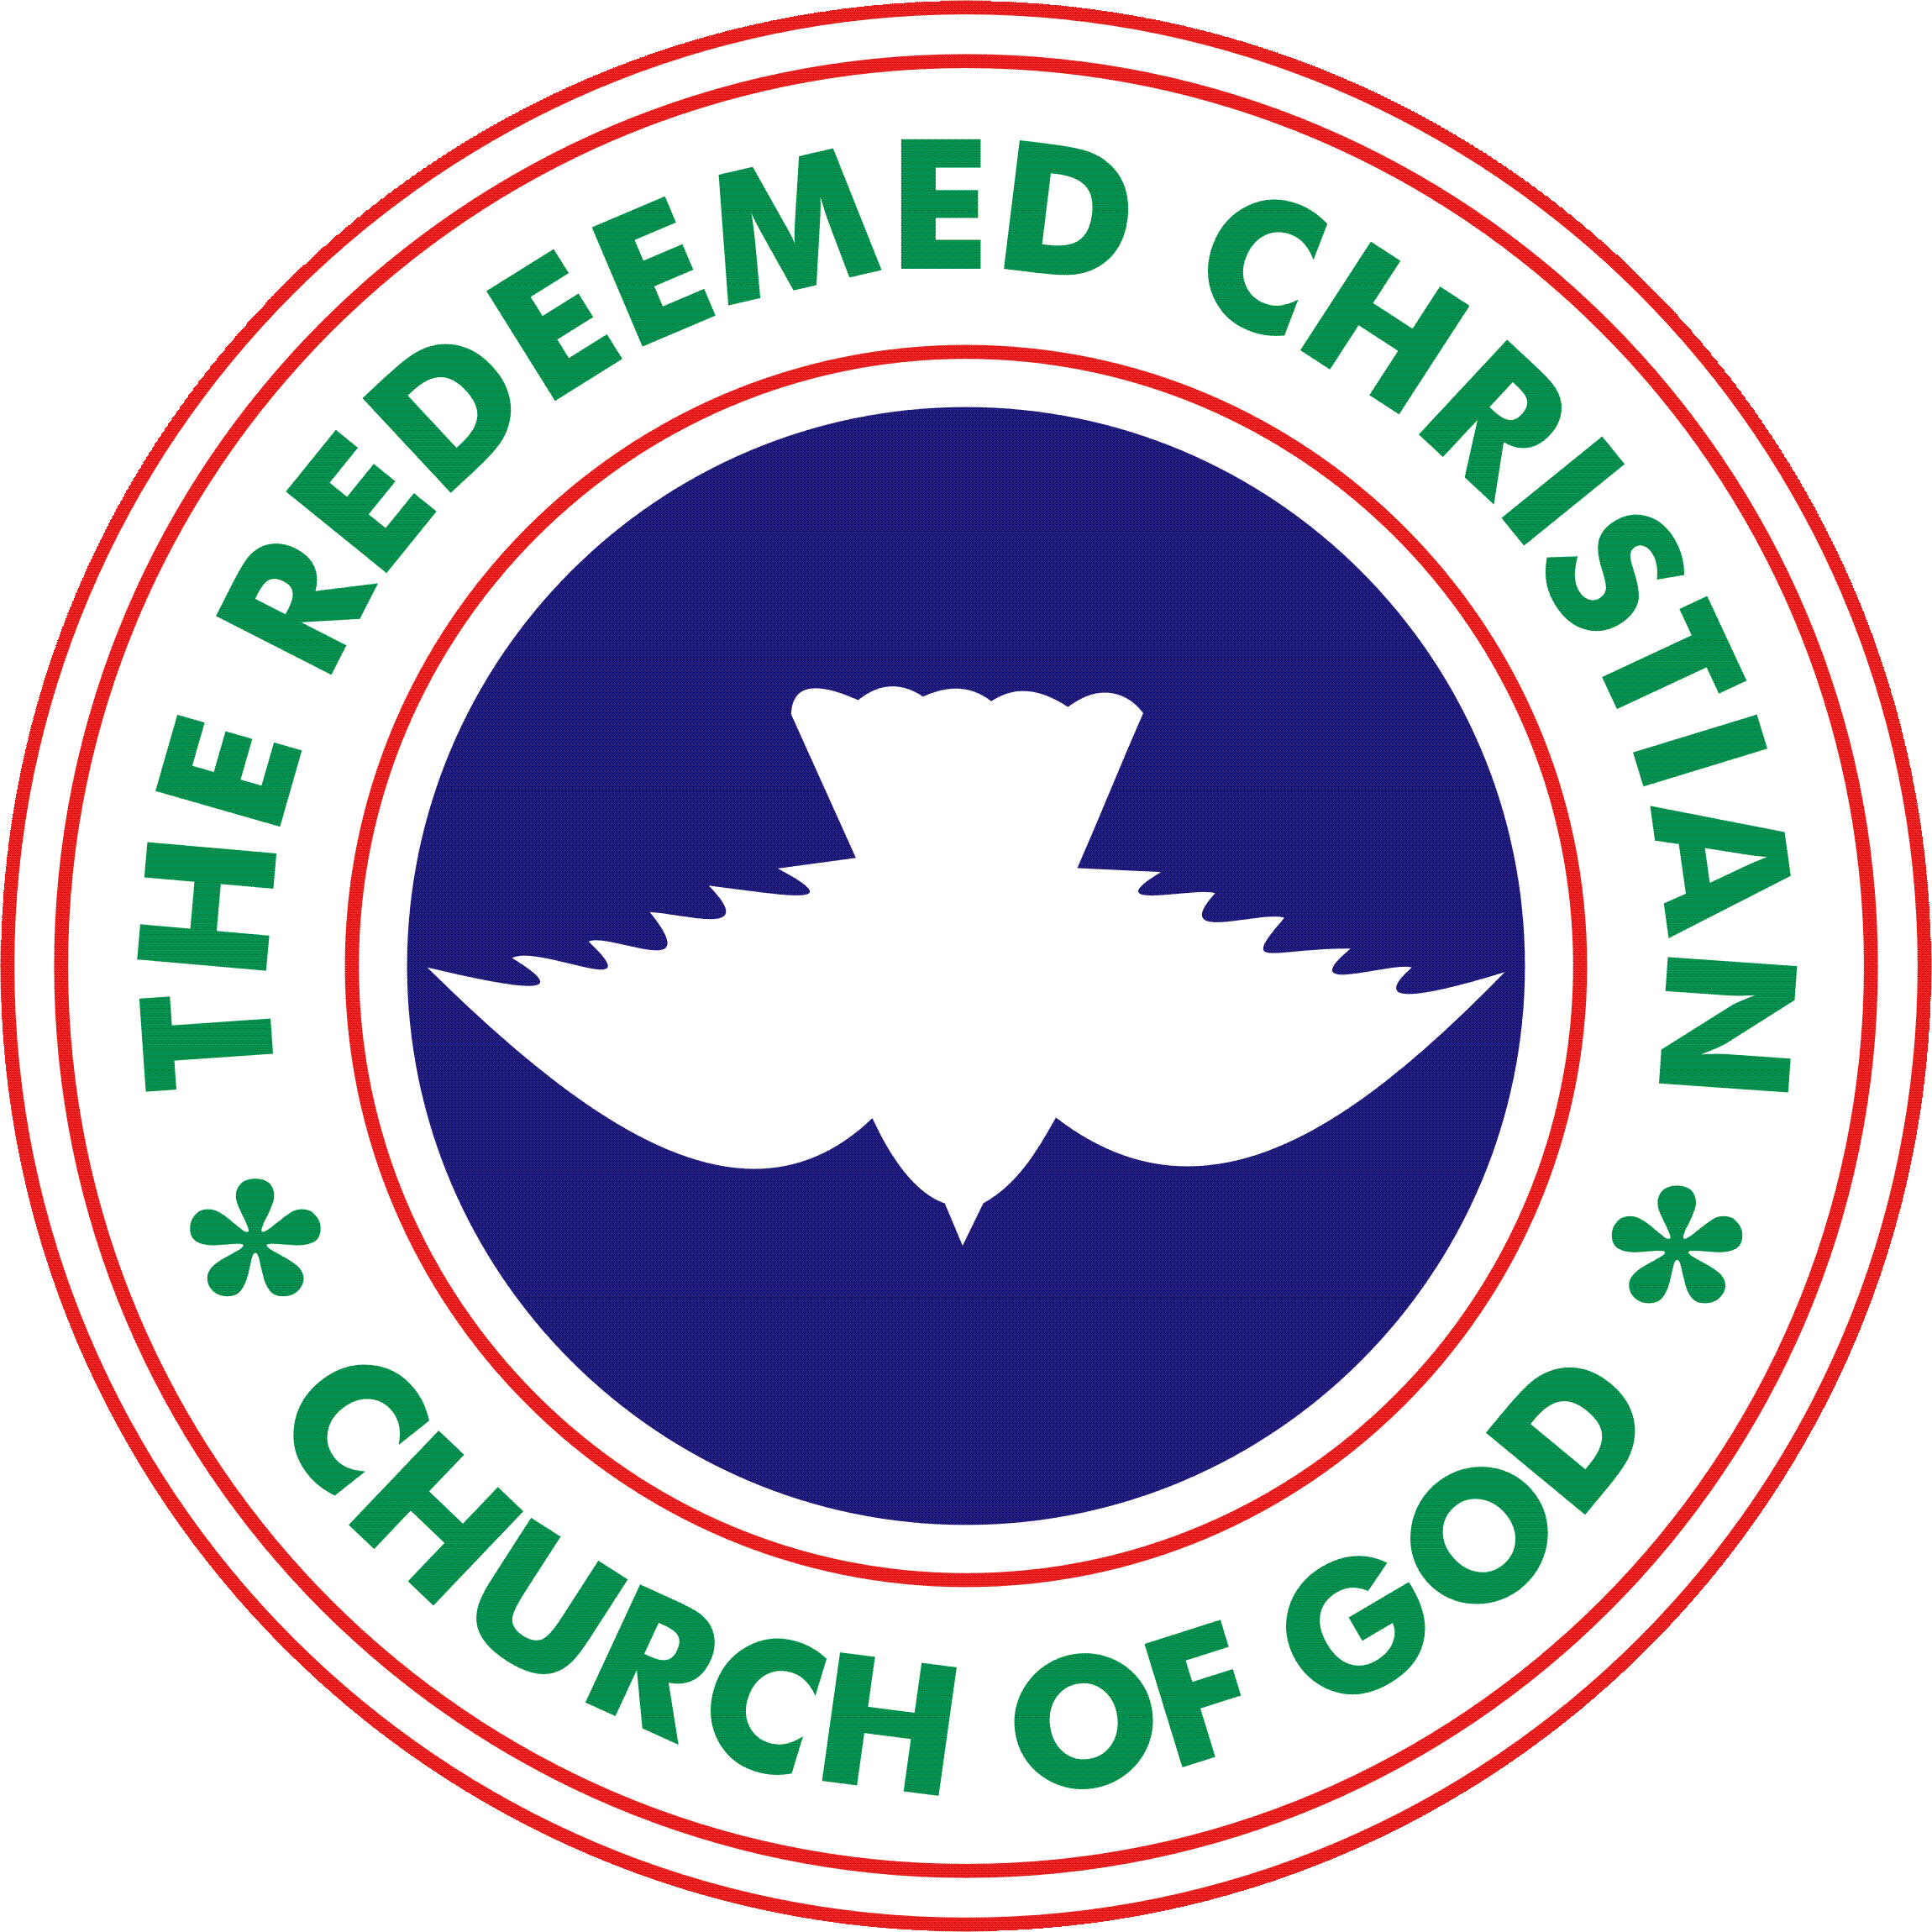 RCCG - Christ Centered International Chapel